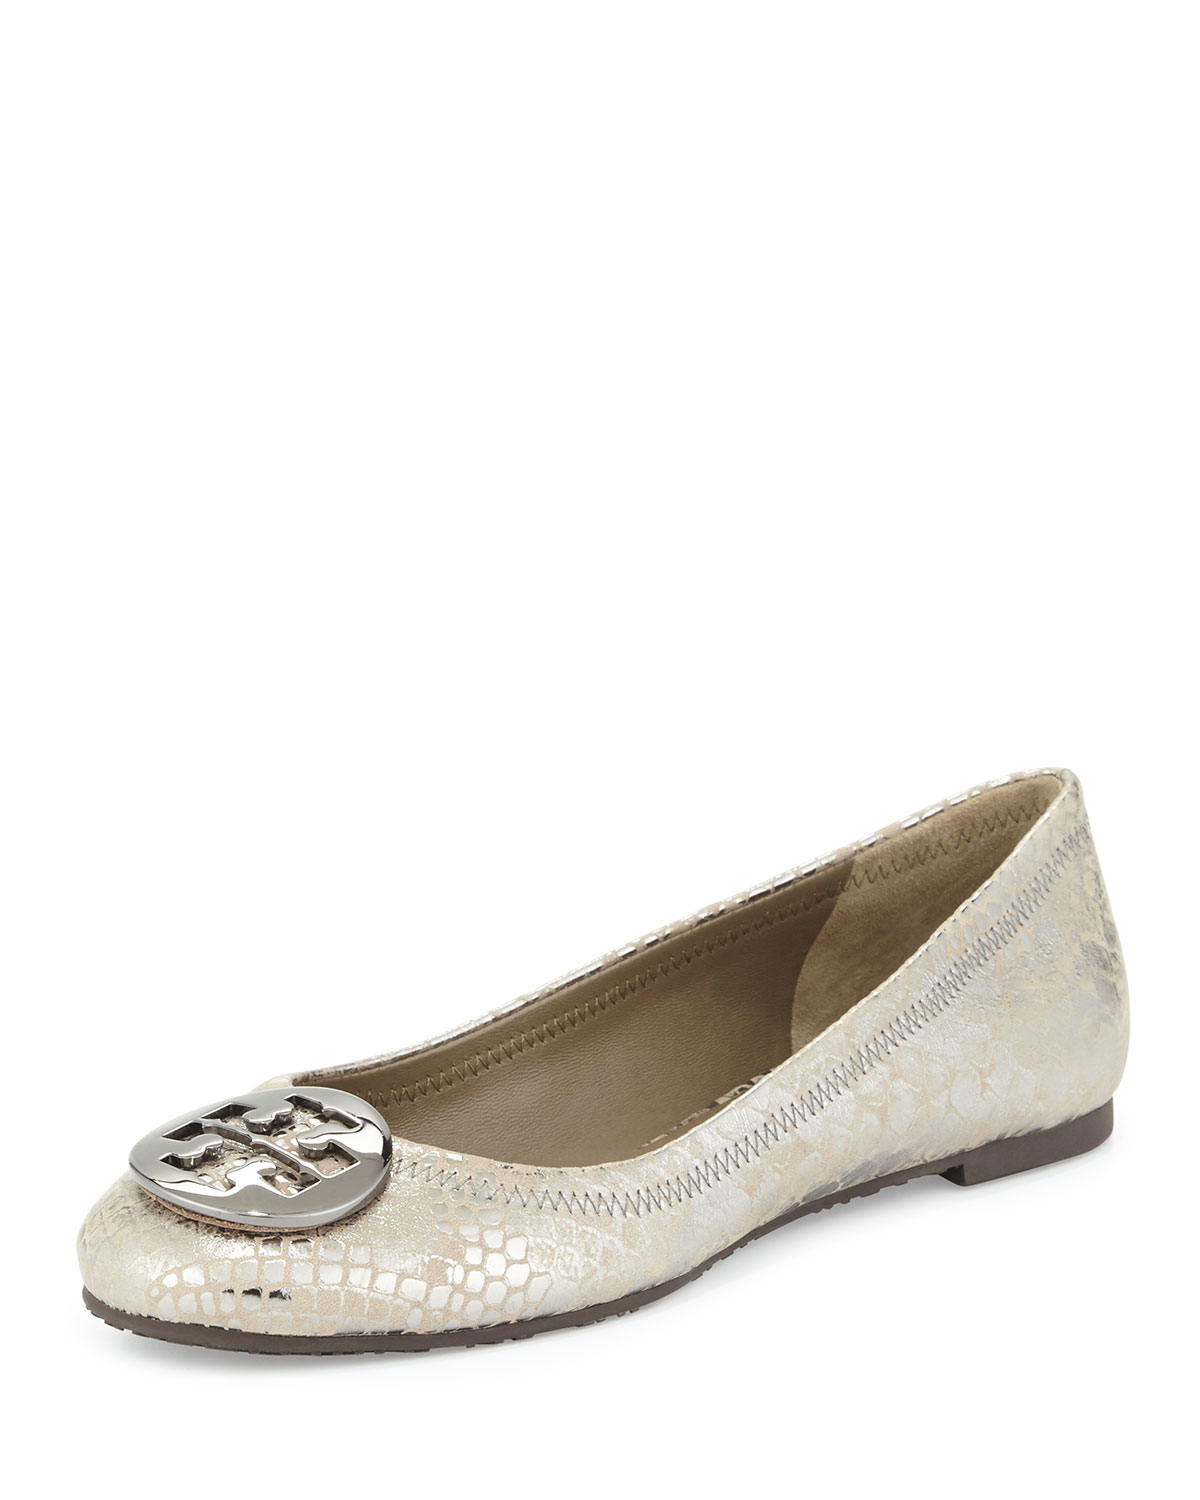 Sep 05,  · Tory Burch's Reva ballet flats are one of the most favorite shoes in the world. Unfortunately, it's also one of the most replicated shoes in the world.